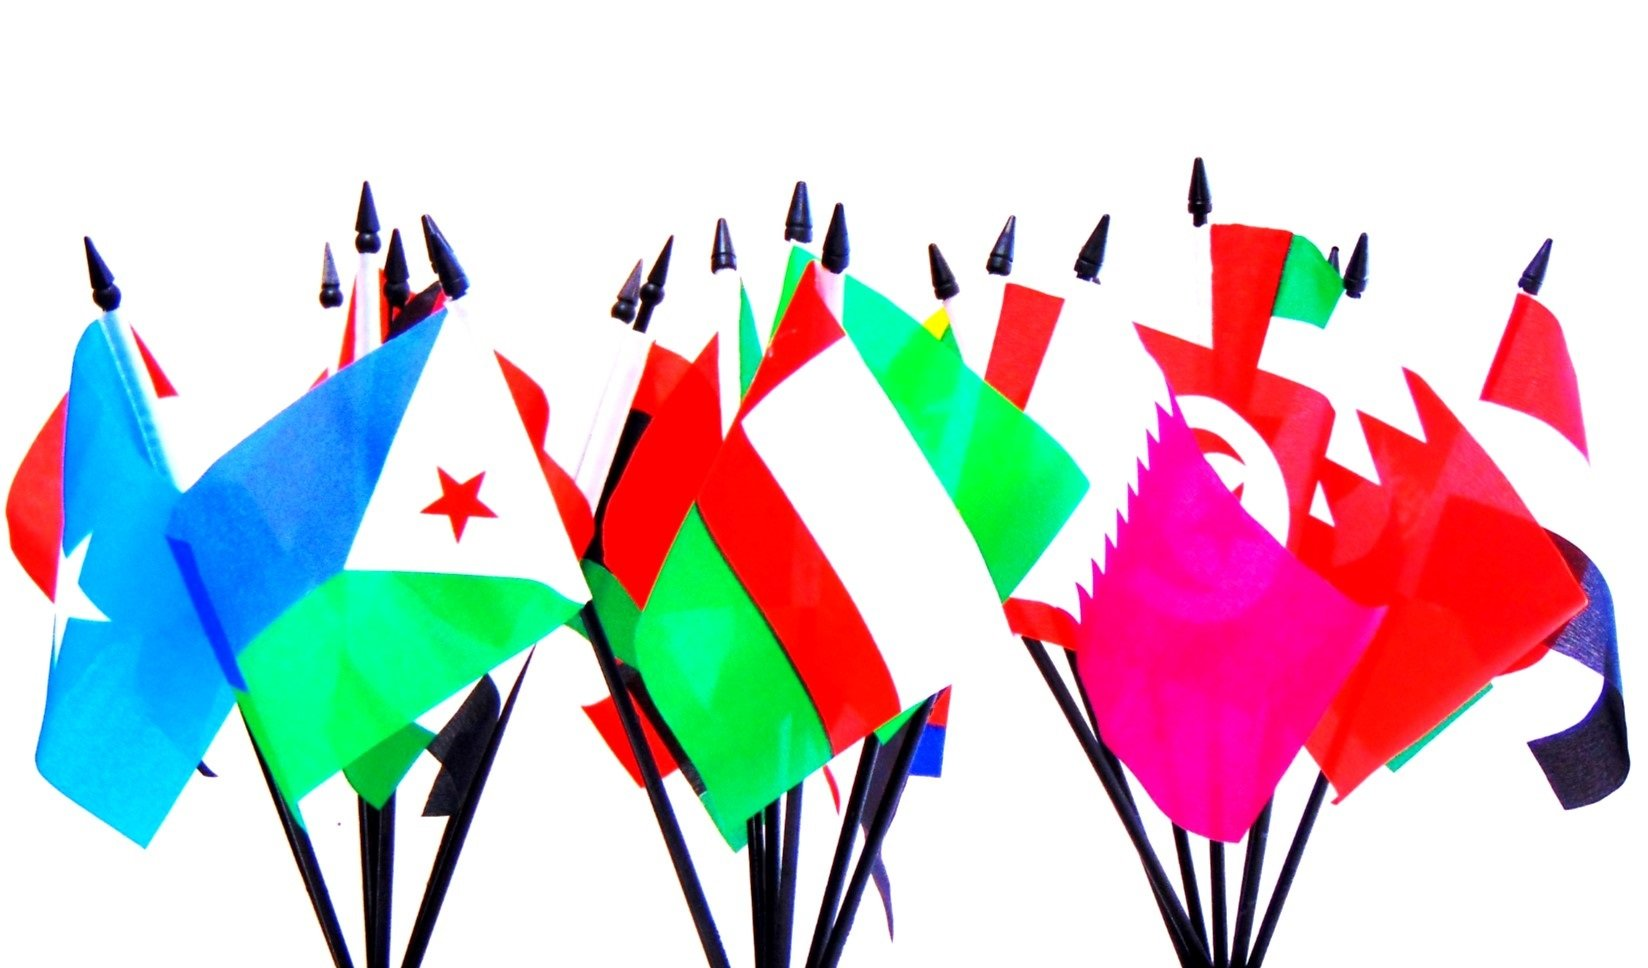 Arab League World Flag SET-22 Polyester 4''x6'' Flags, One Flag for Each Country in The Arab League 4x6 Miniature Desk & Table Flags, Small Mini Stick Flags